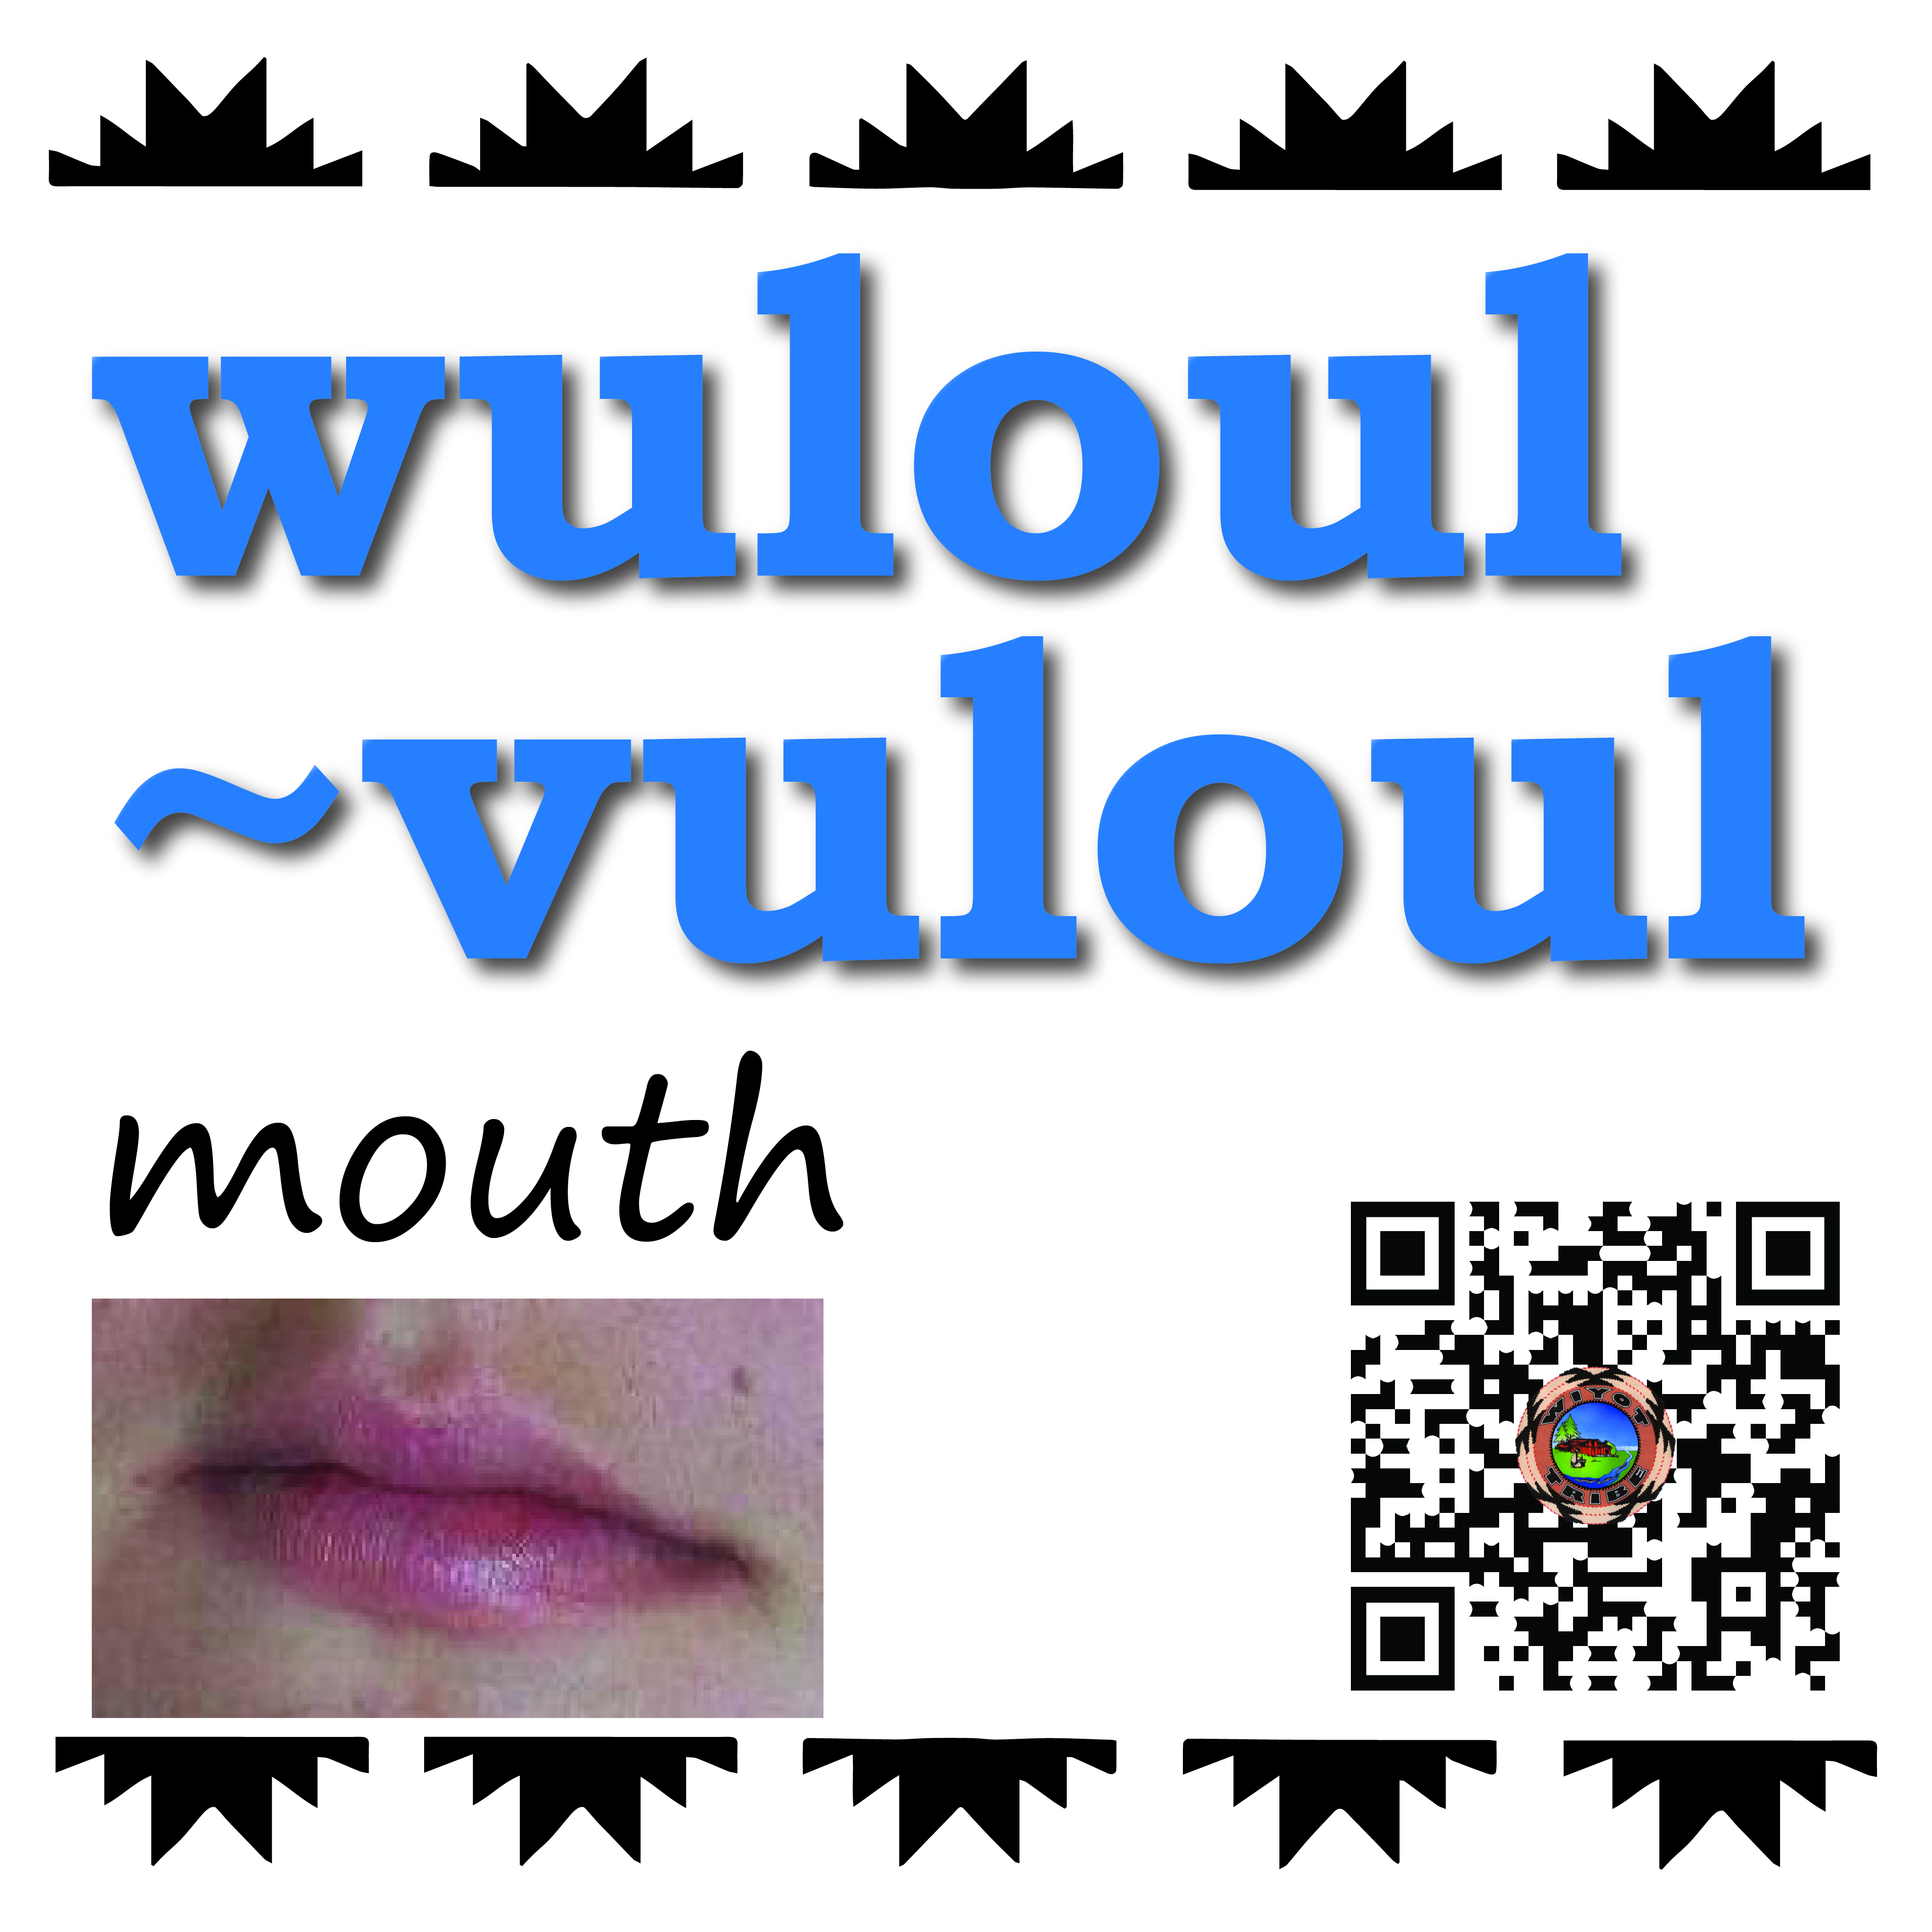 wuloul_vuloul_mouth